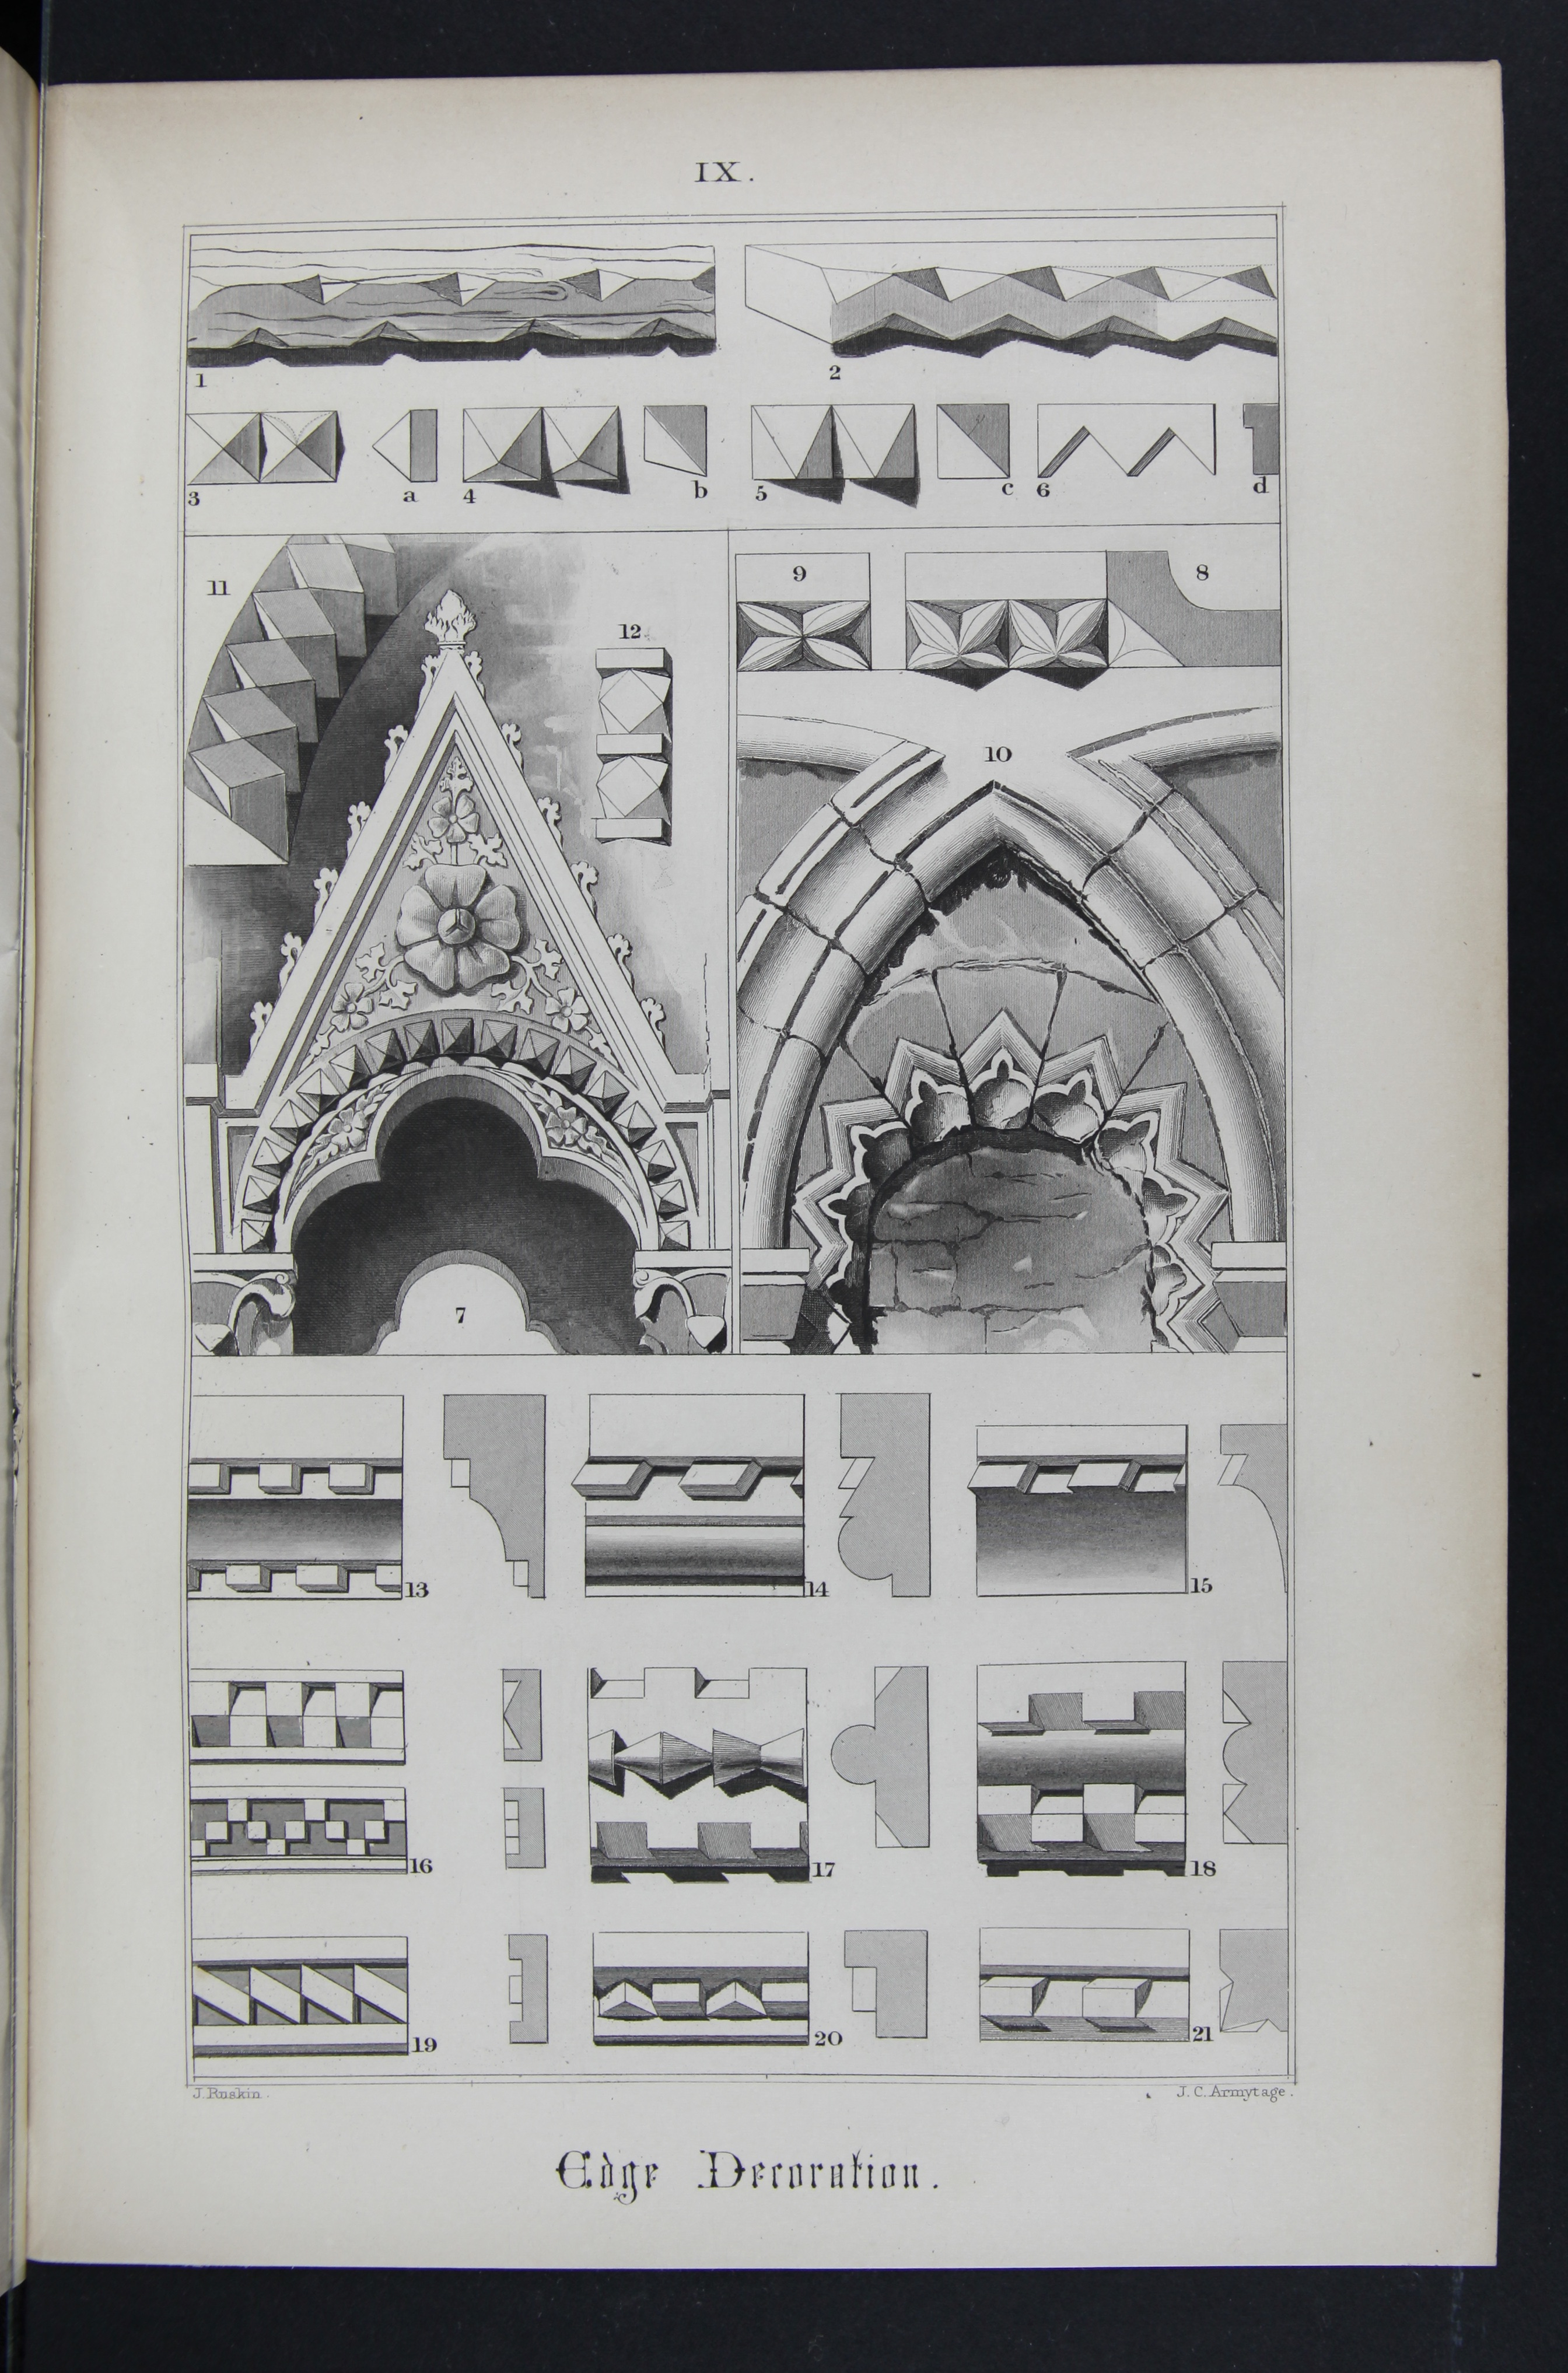 History of the book chapter 9 industrialization of print john ruskin the stones of venice london smith elder and co 1851 na1121v5 r8 1851 john ruskins enthusiasm for the details decorations fandeluxe Gallery